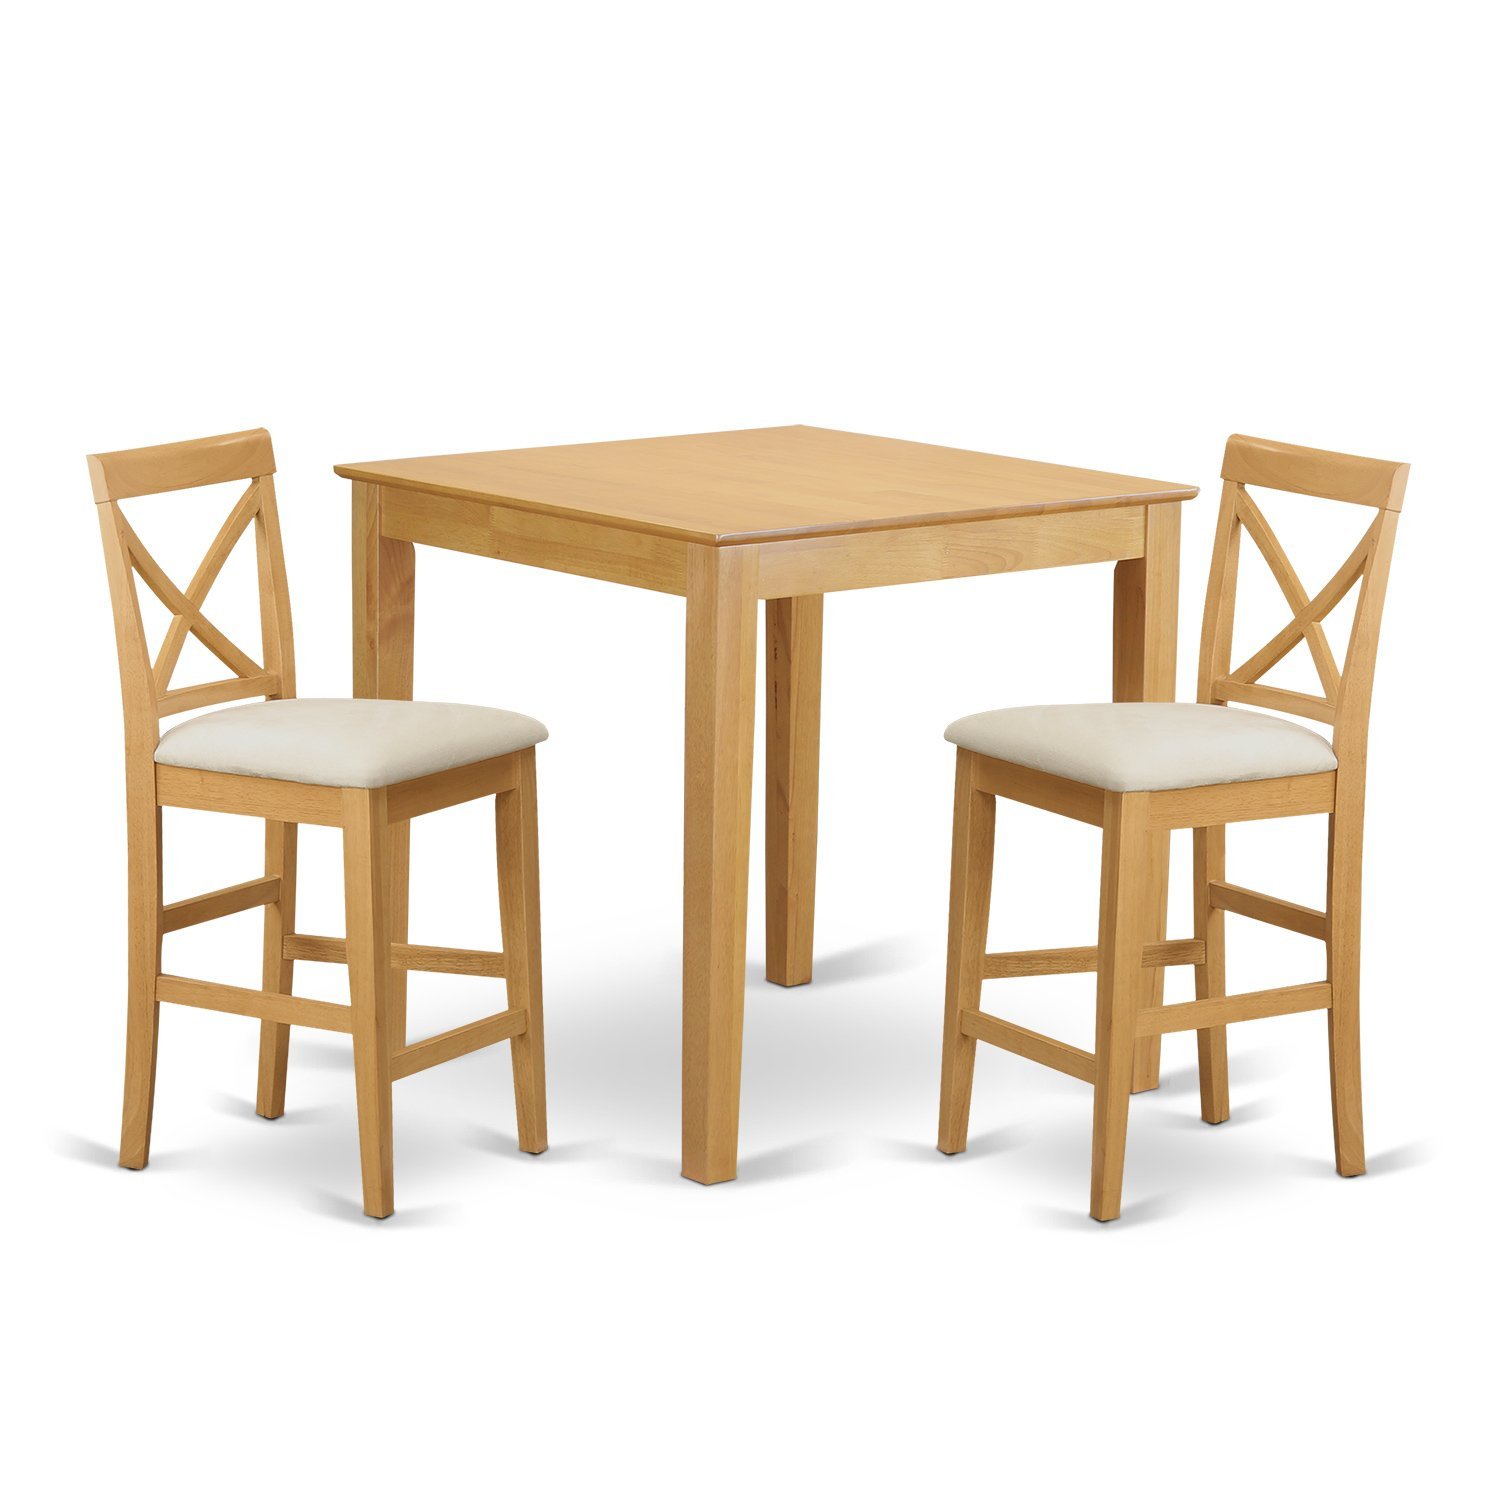 East West Furniture PUBS3-OAK-C 3-Piece Gathering Table Set - Oak Finish